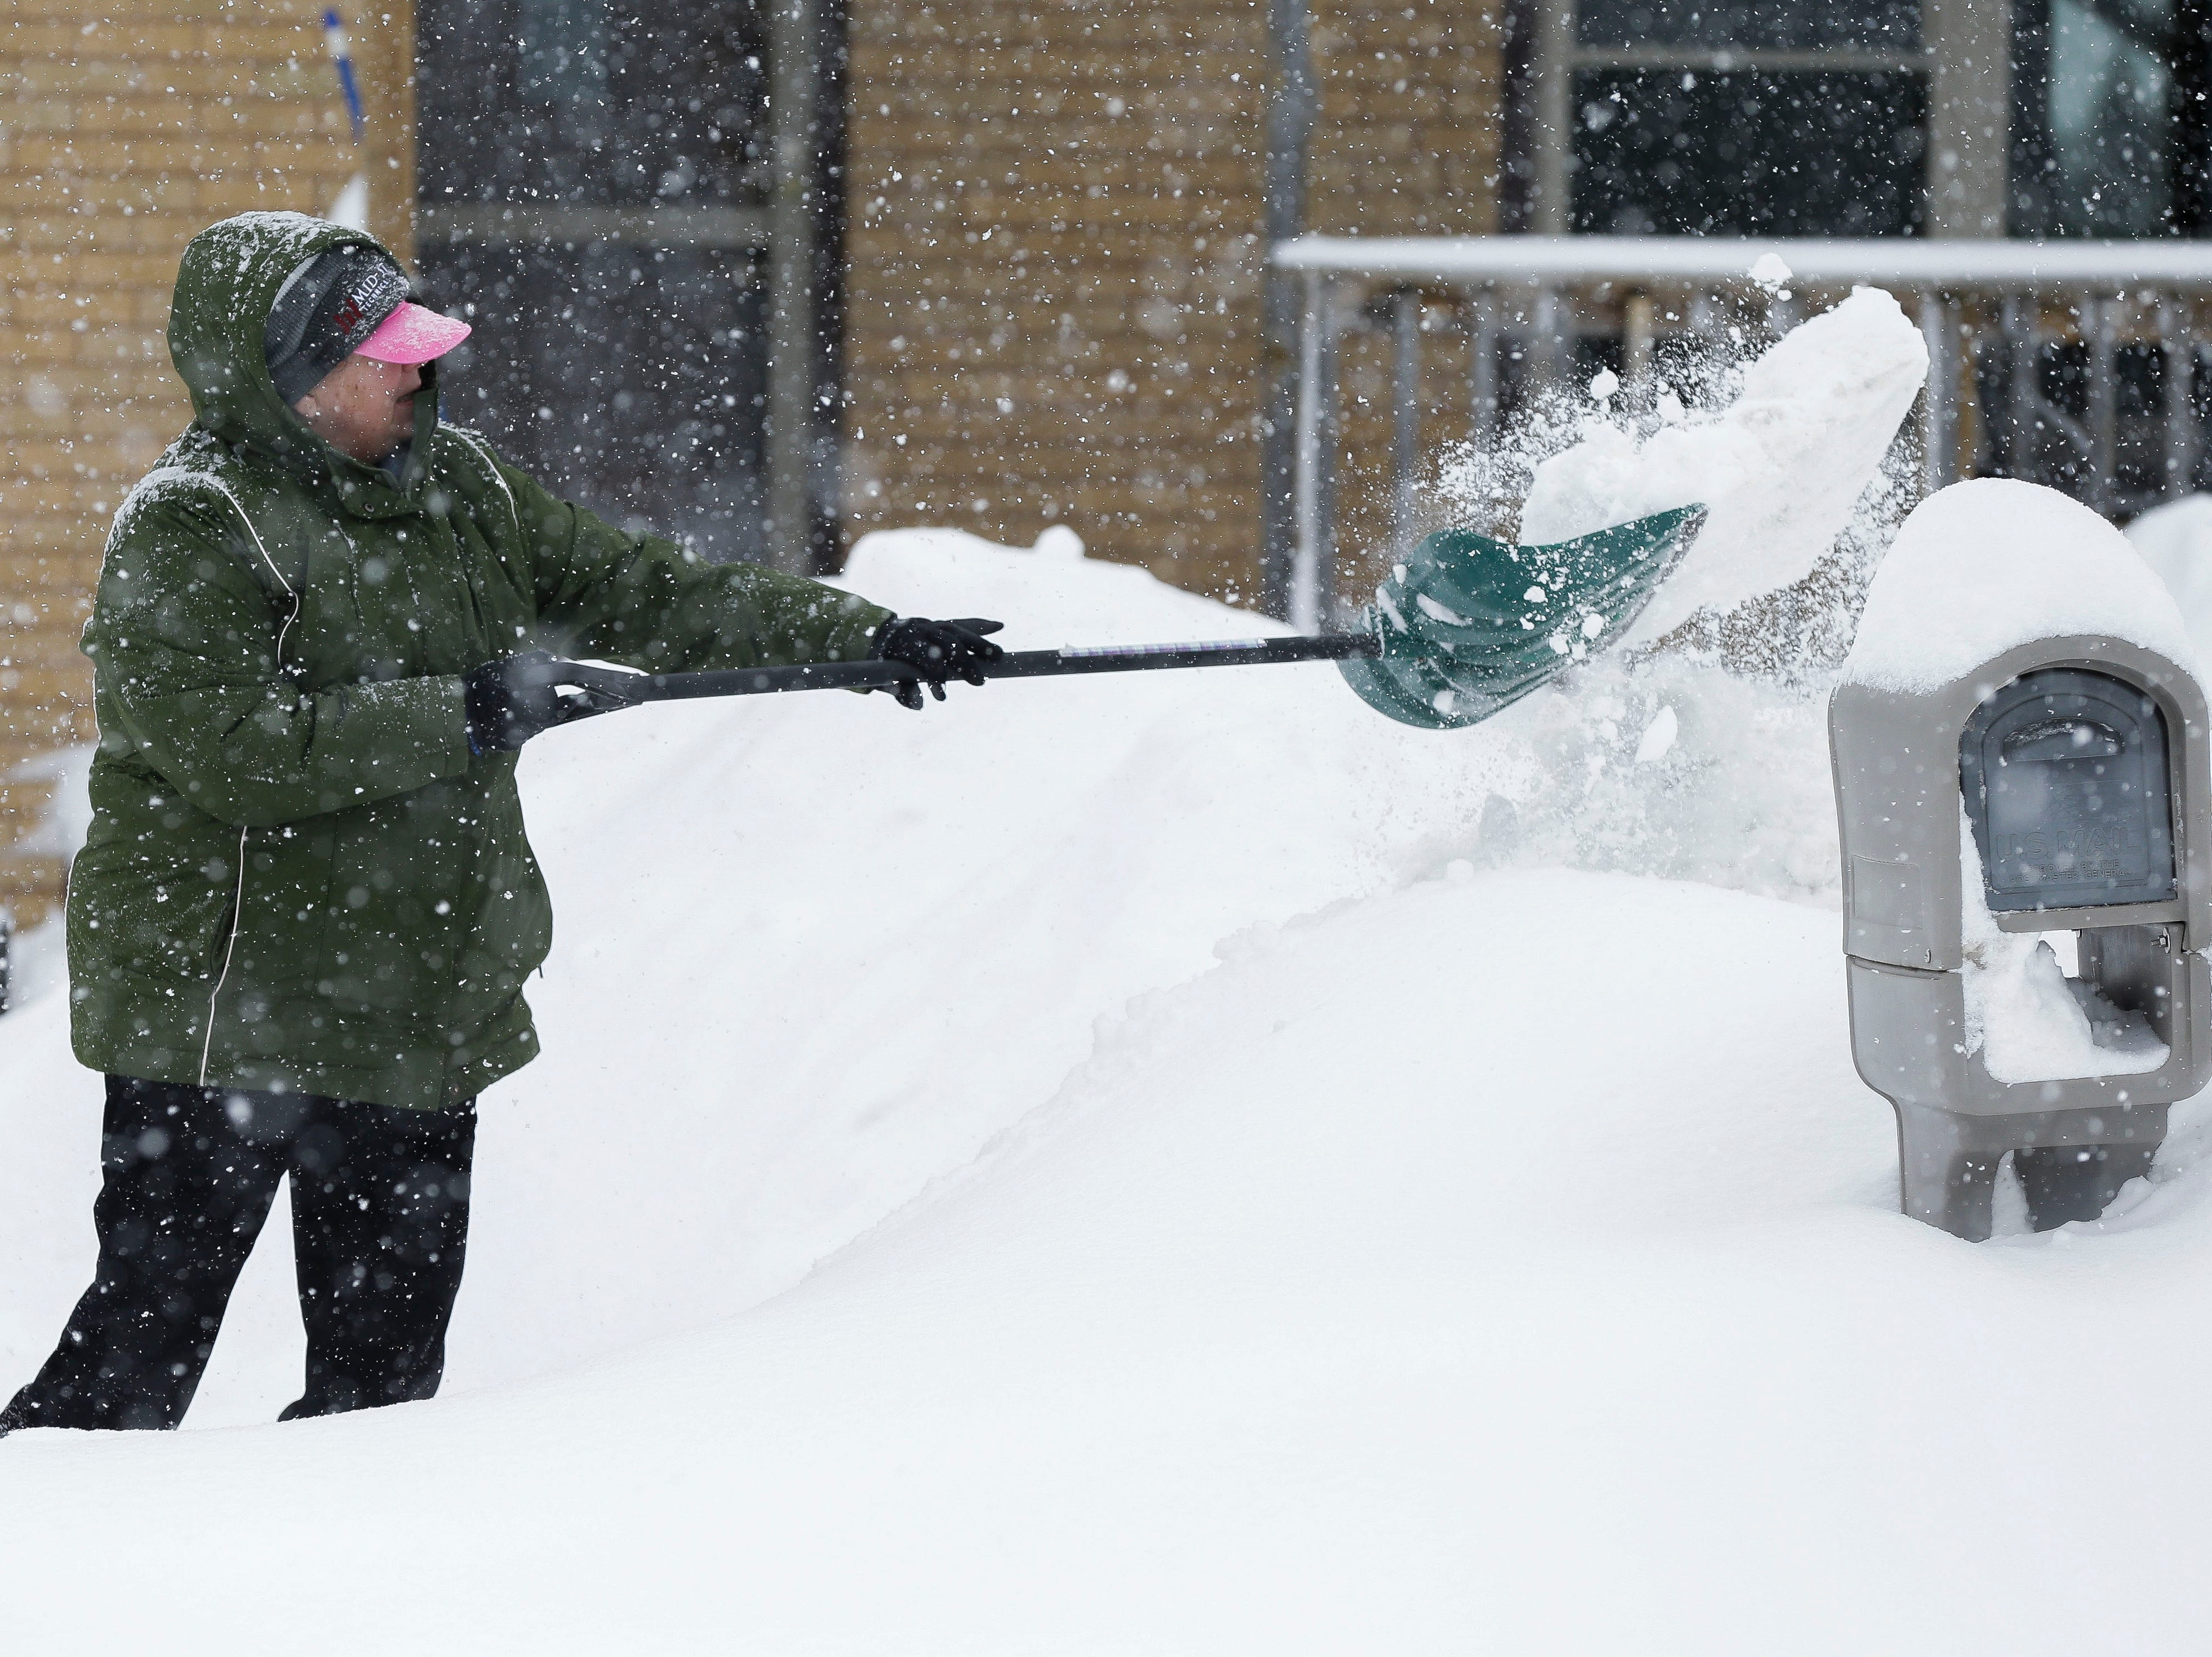 Diana Kohn shovels snow from her driveway on Tuesday, February 12, 2019, in Stevens Point, Wis. A winter storm is expected to drop 8-11 inches of snow in central Wisconsin before clearing Tuesday night.